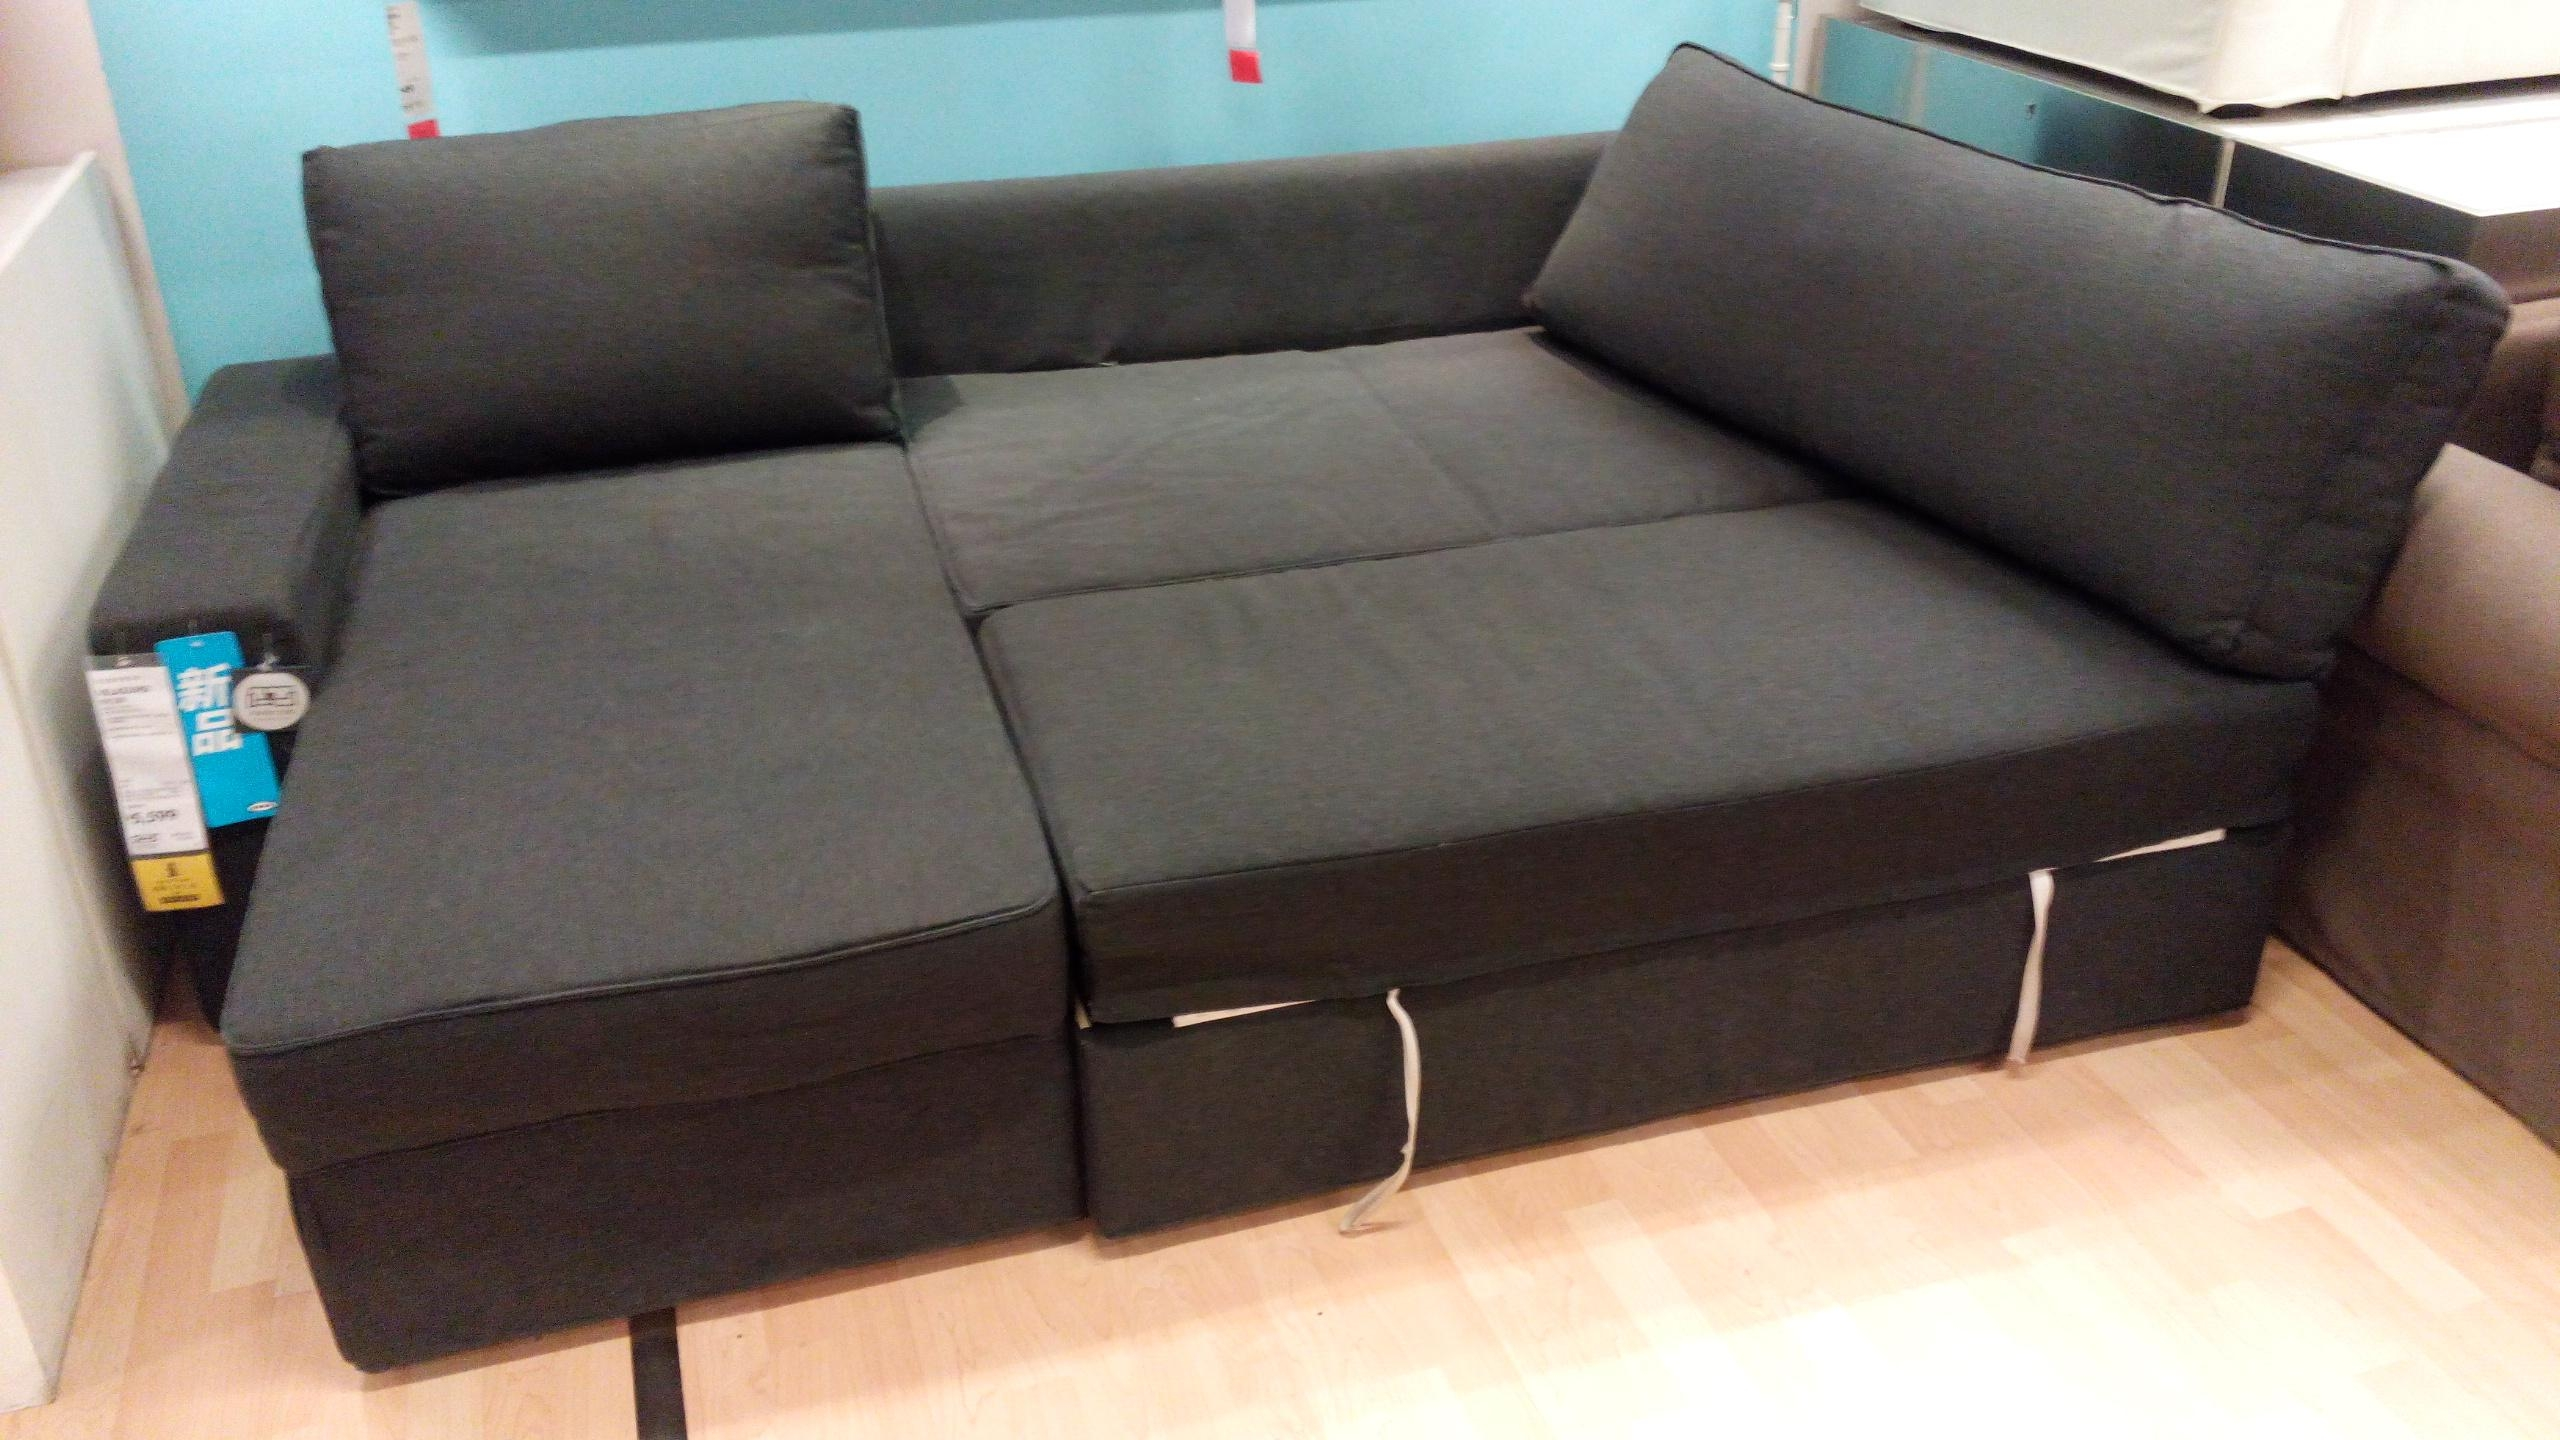 Ikea Vilasund And Backabro Review – Return Of The Sofa Bed Clones! Pertaining To Sofa Lounger Beds (Image 10 of 20)